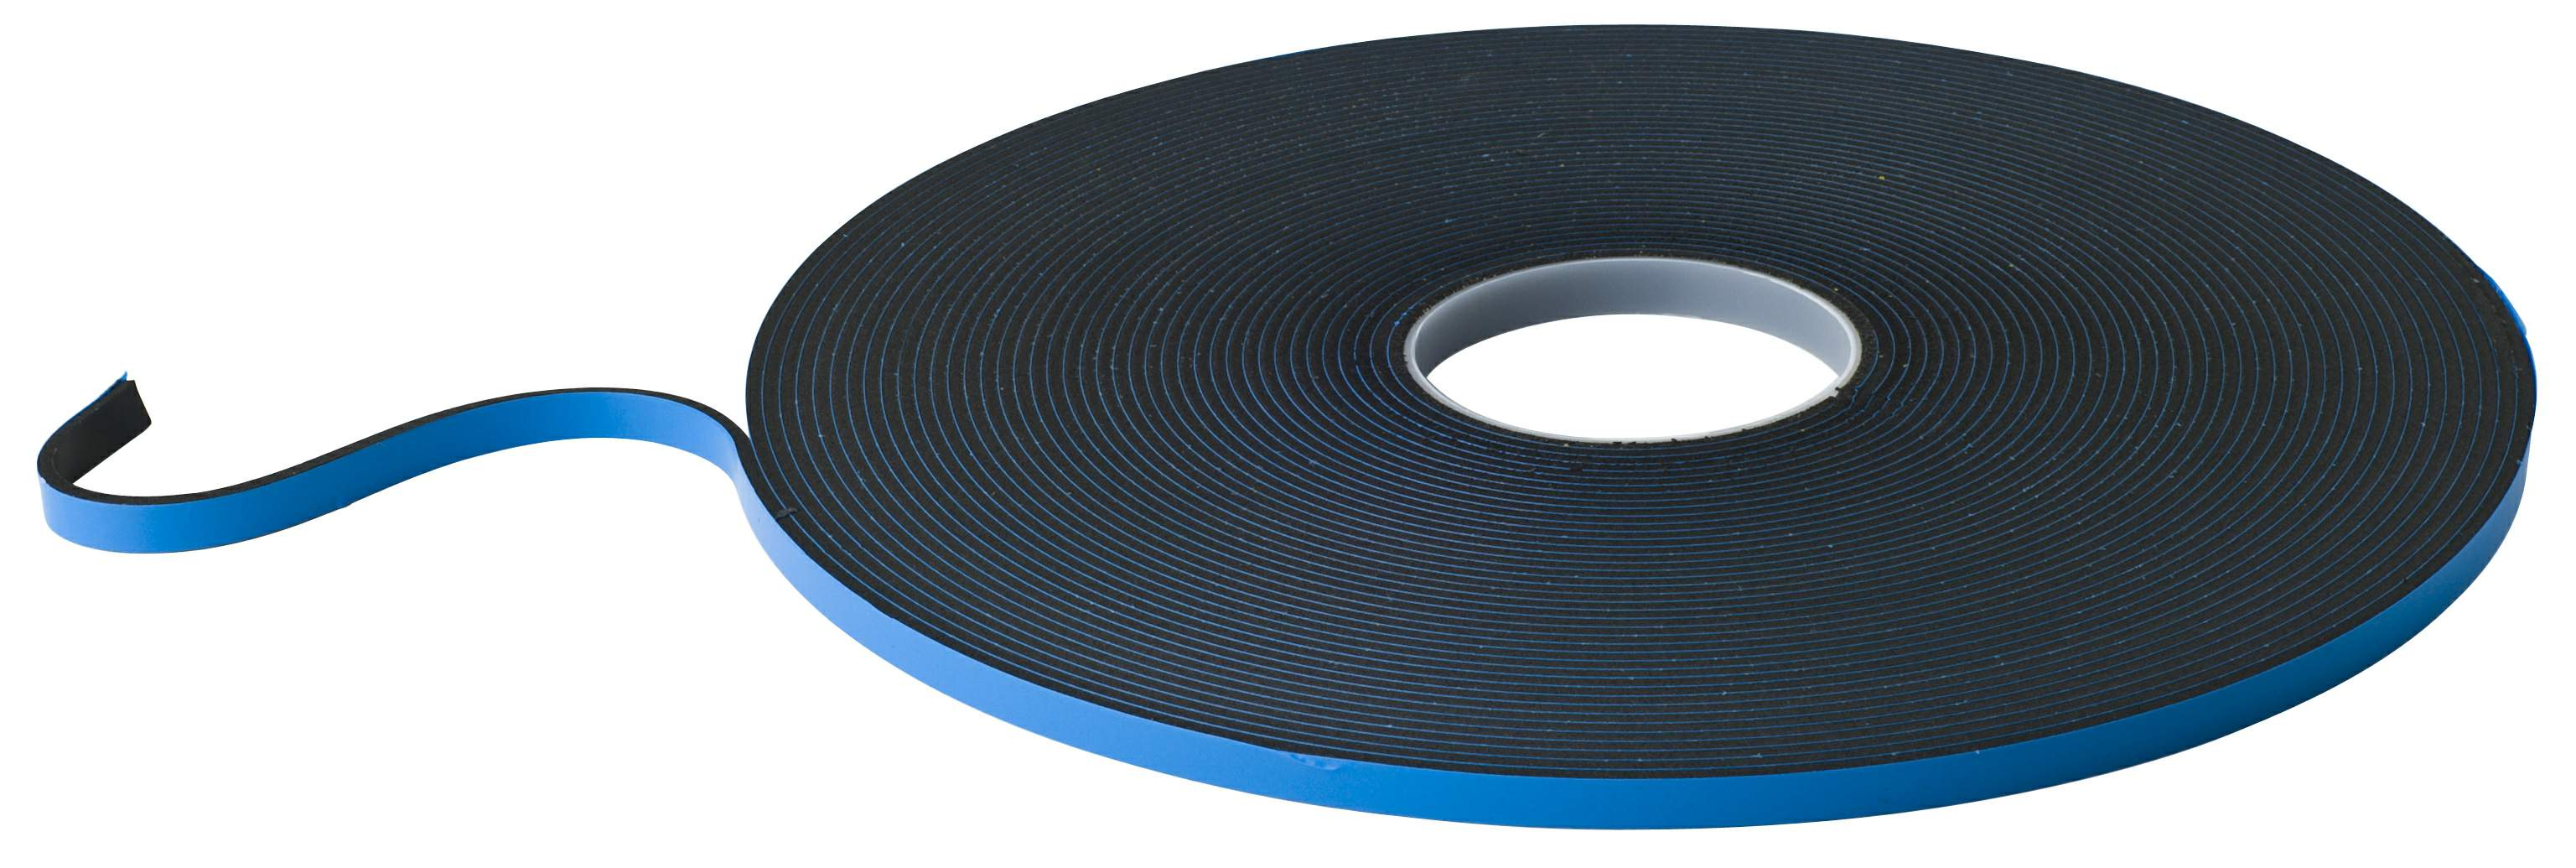 Thumbnail - Foam Tape S/S Structural 6.4mm X 9mm X 15.2M